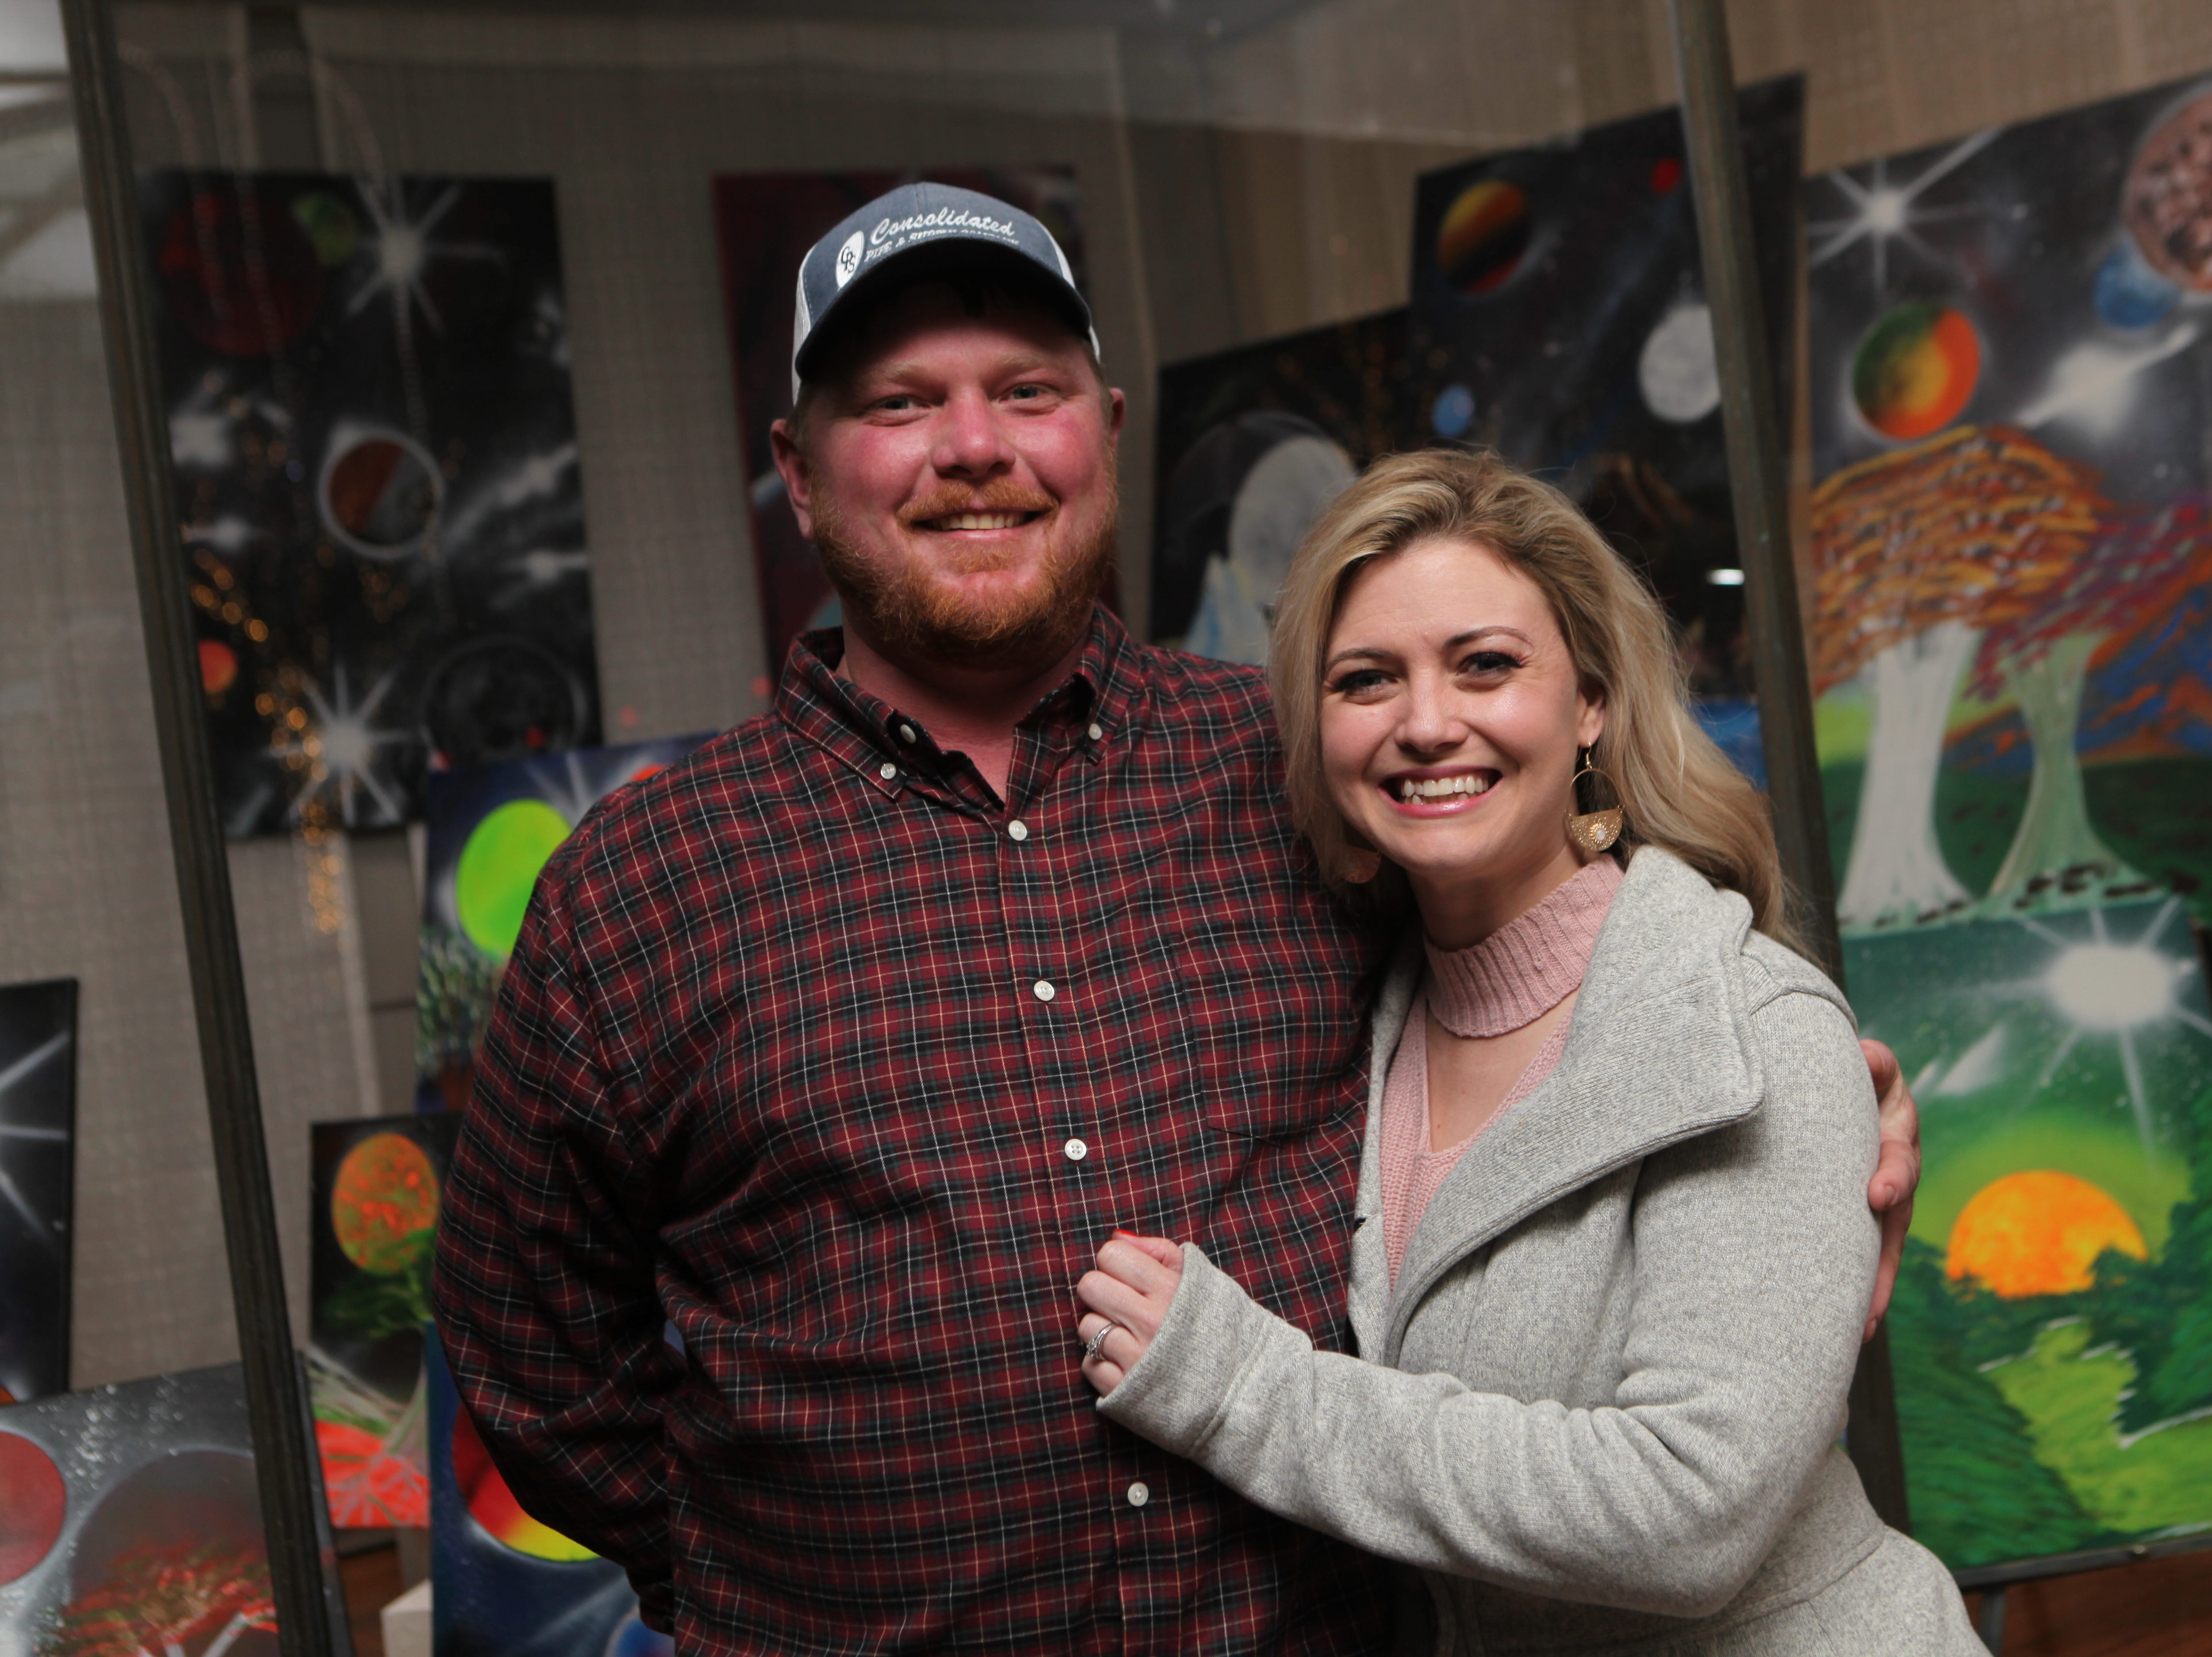 Matt Maloney and Regina Mick enjoy the artwork during the New Year's Eve party at the Downtown Artists Co-op, Dec. 31, 2018, in Clarksville, Tenn.